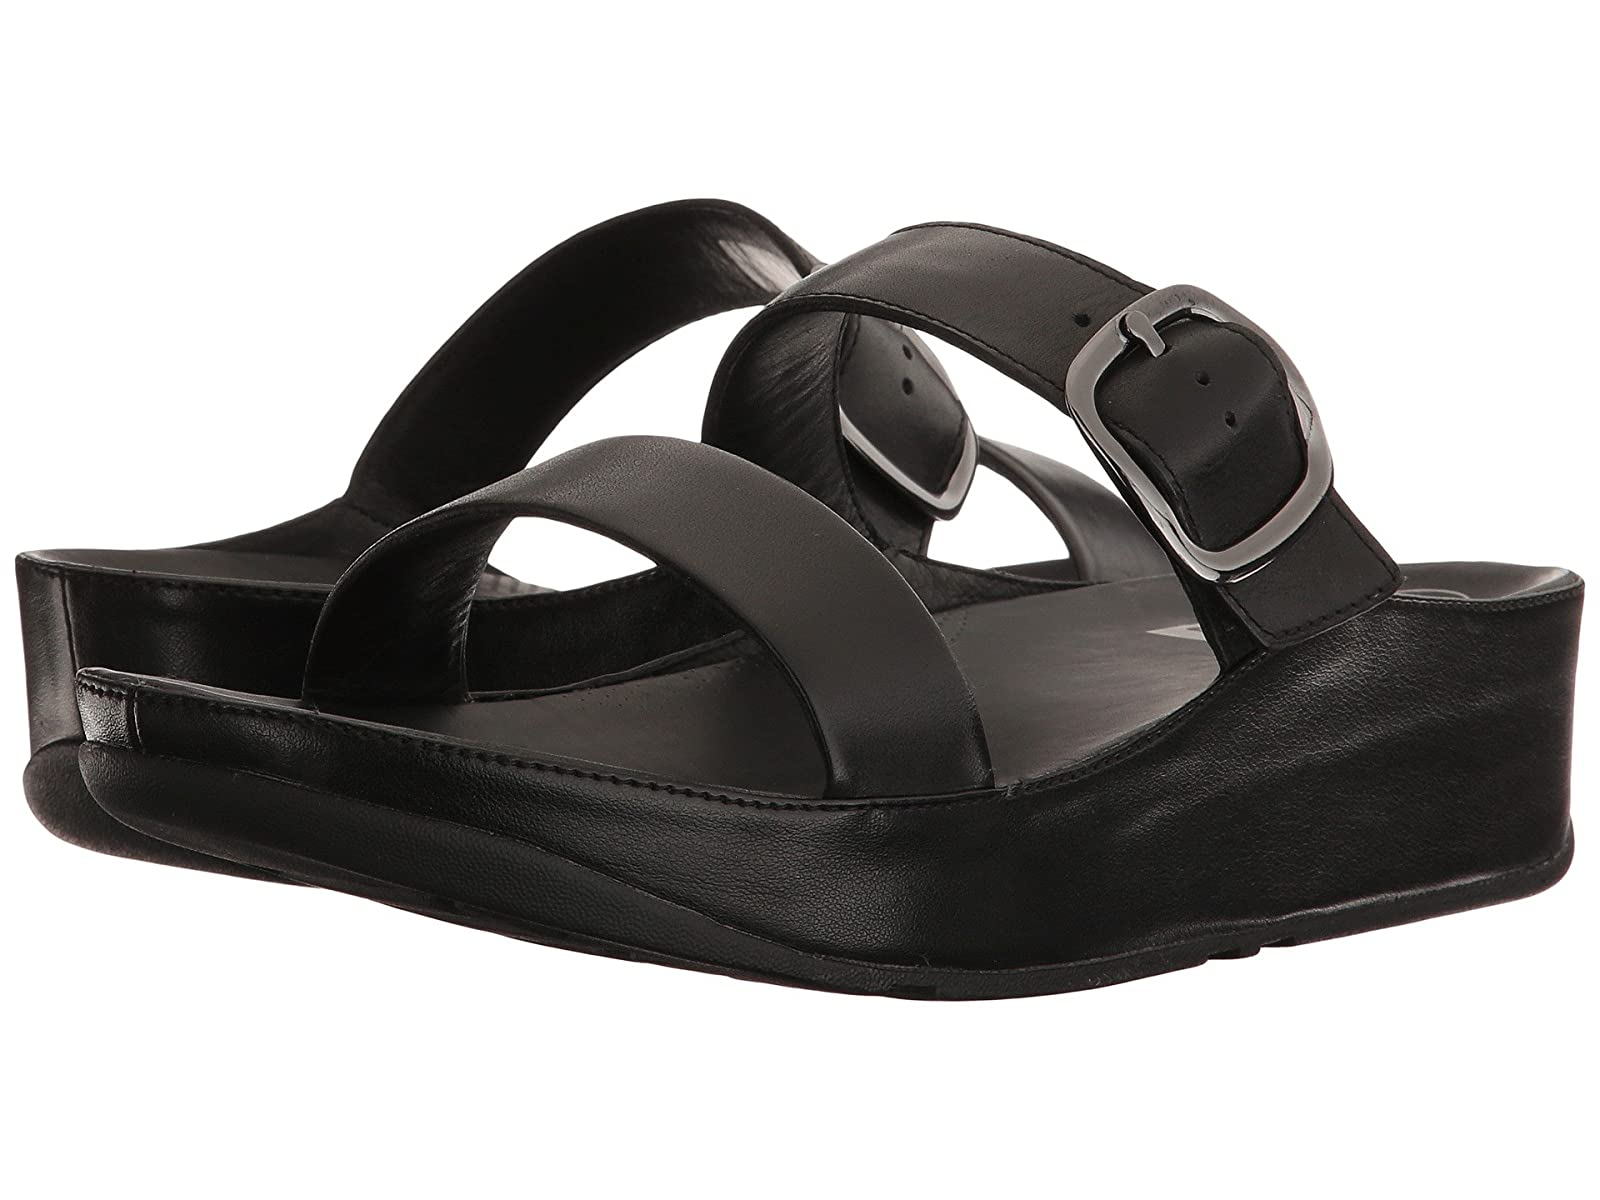 FitFlop Stack SlideCheap and distinctive eye-catching shoes